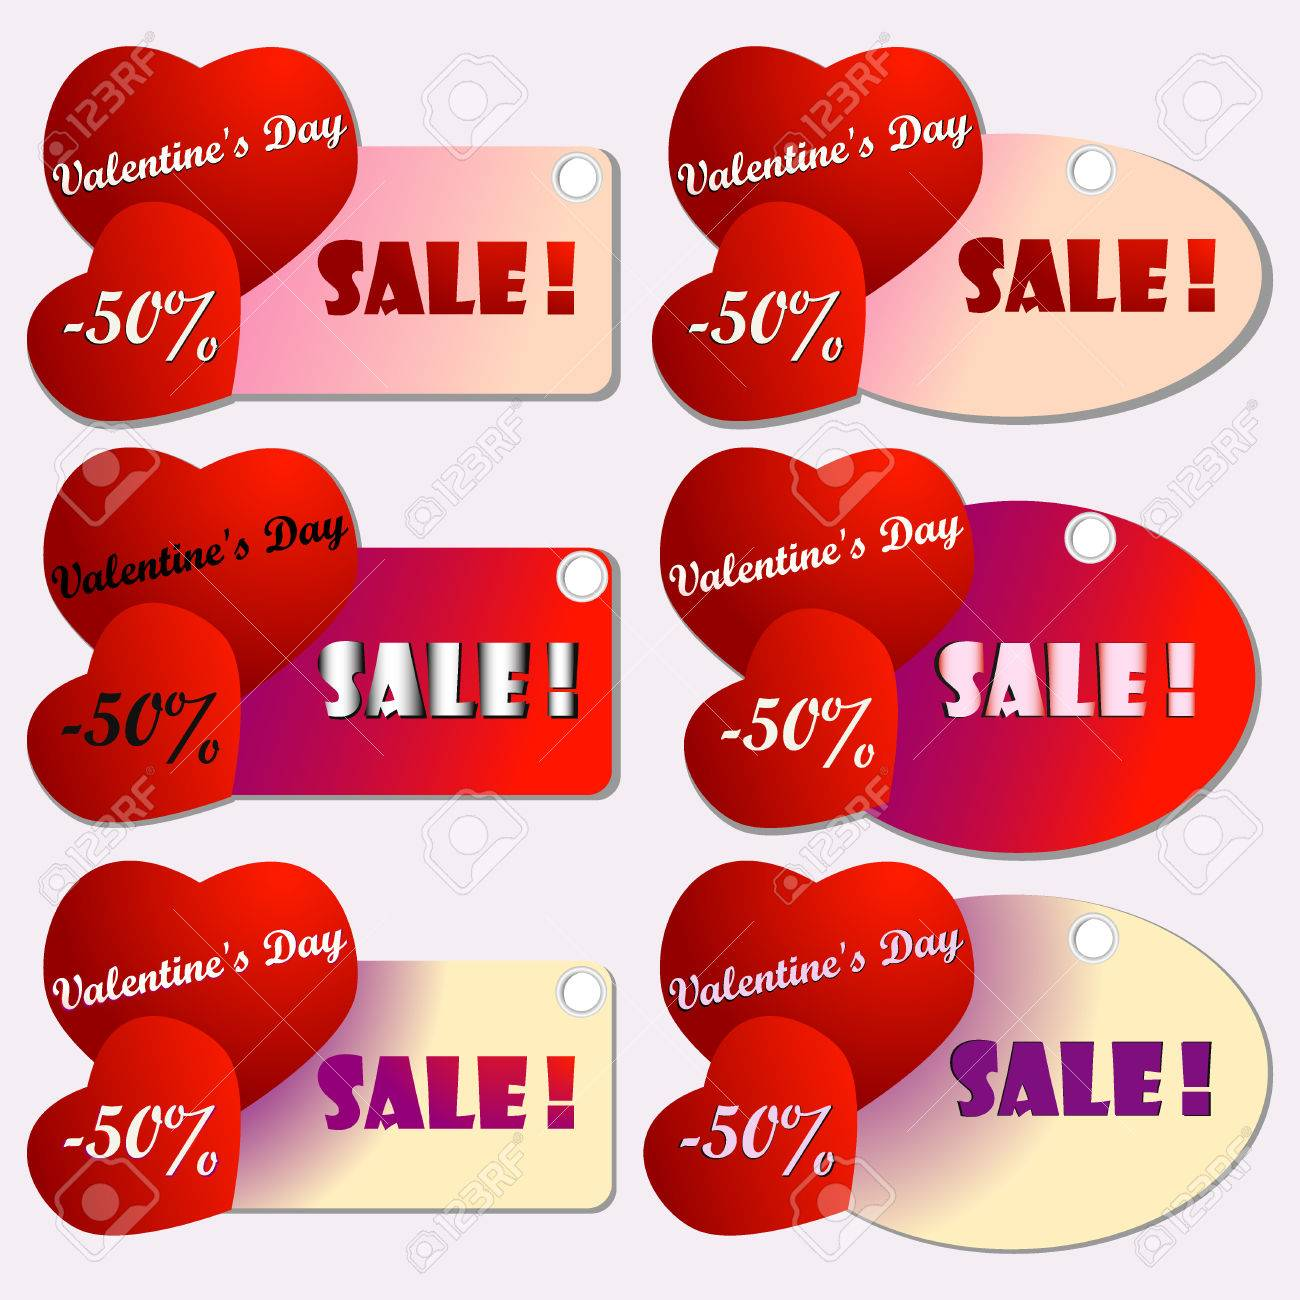 Happy Valentines Day Cards With Hearts Saint Valentine S Day